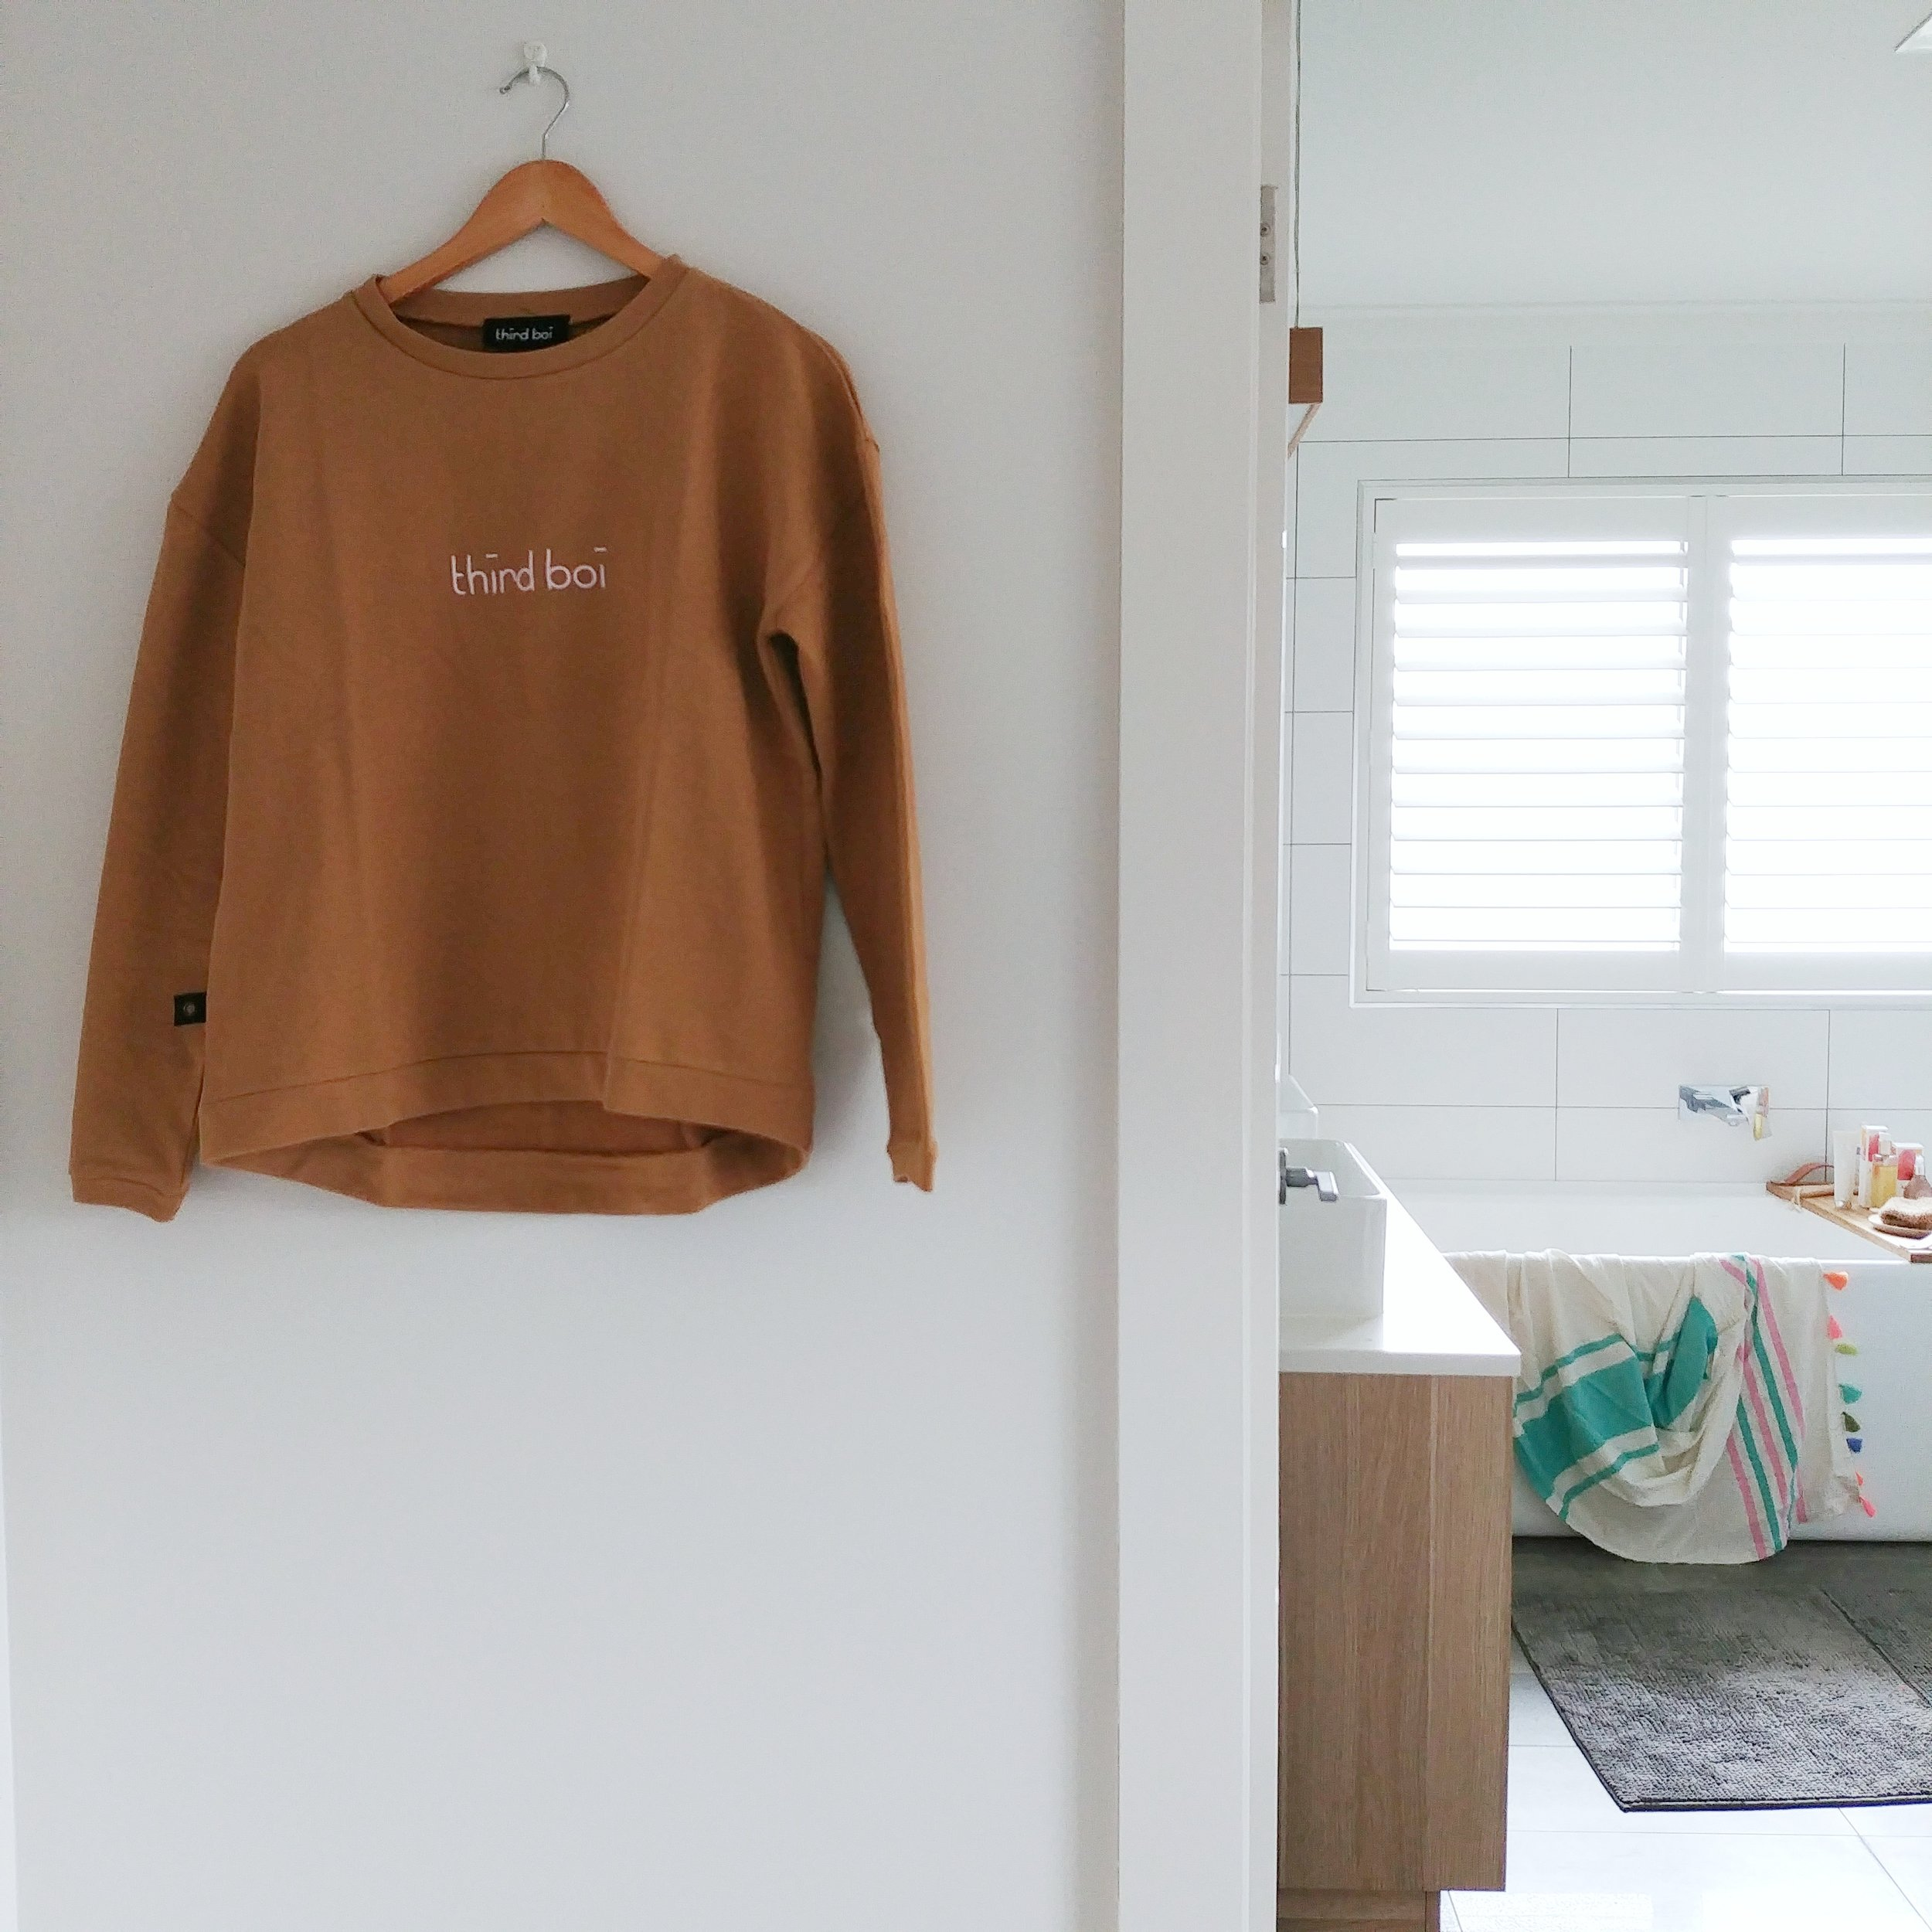 Keeping it simple at home. Photo by Lisa Lee featuring logo sweat from Third Boi.